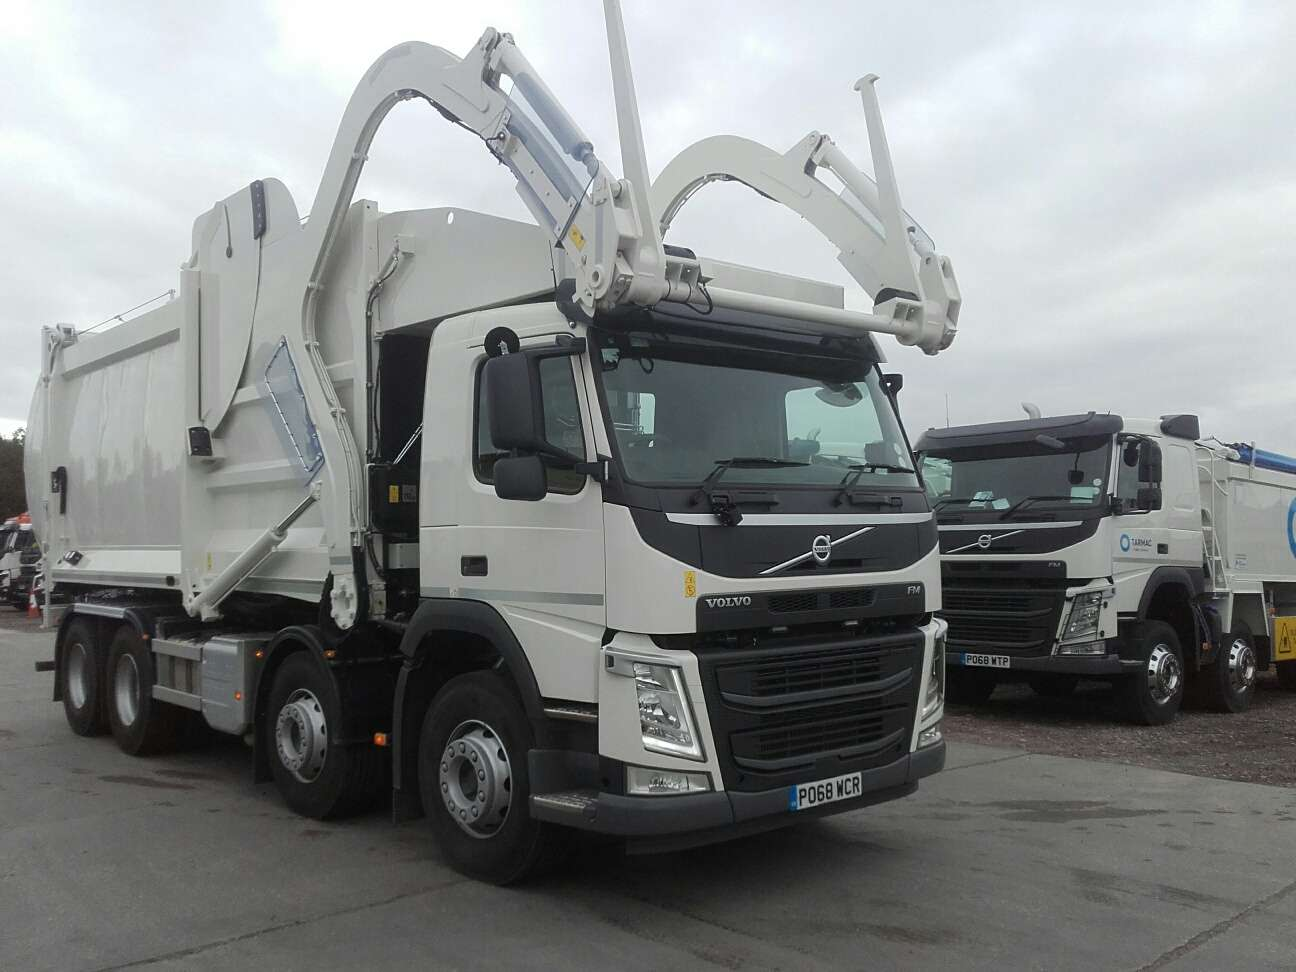 2018 Volvo FM 84 FR 8x4 front end loader for sale